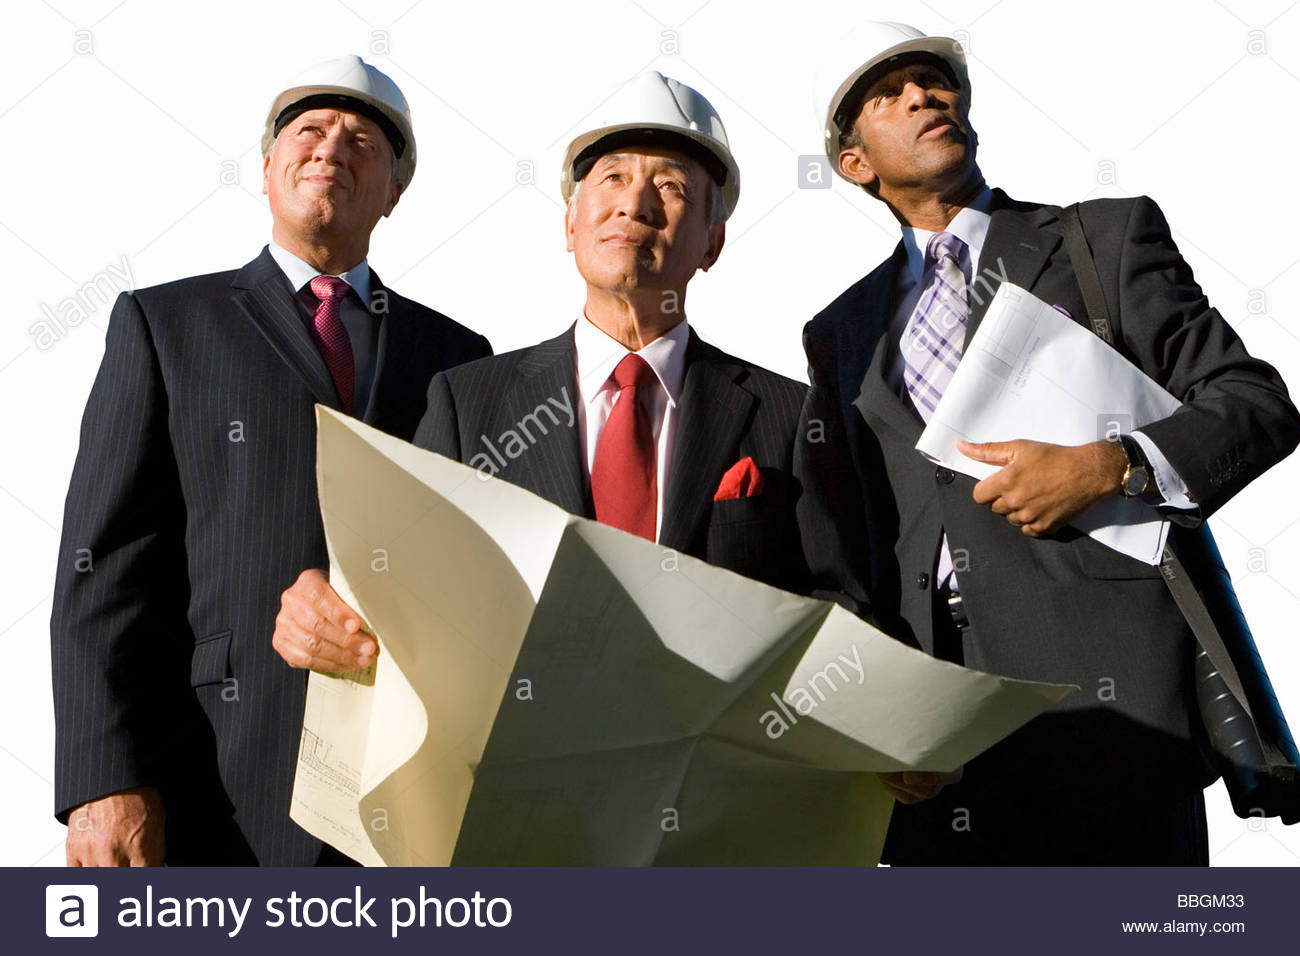 Businessman with blueprint by colleagues, in hardhats, low angle view, cut out - Stock Image